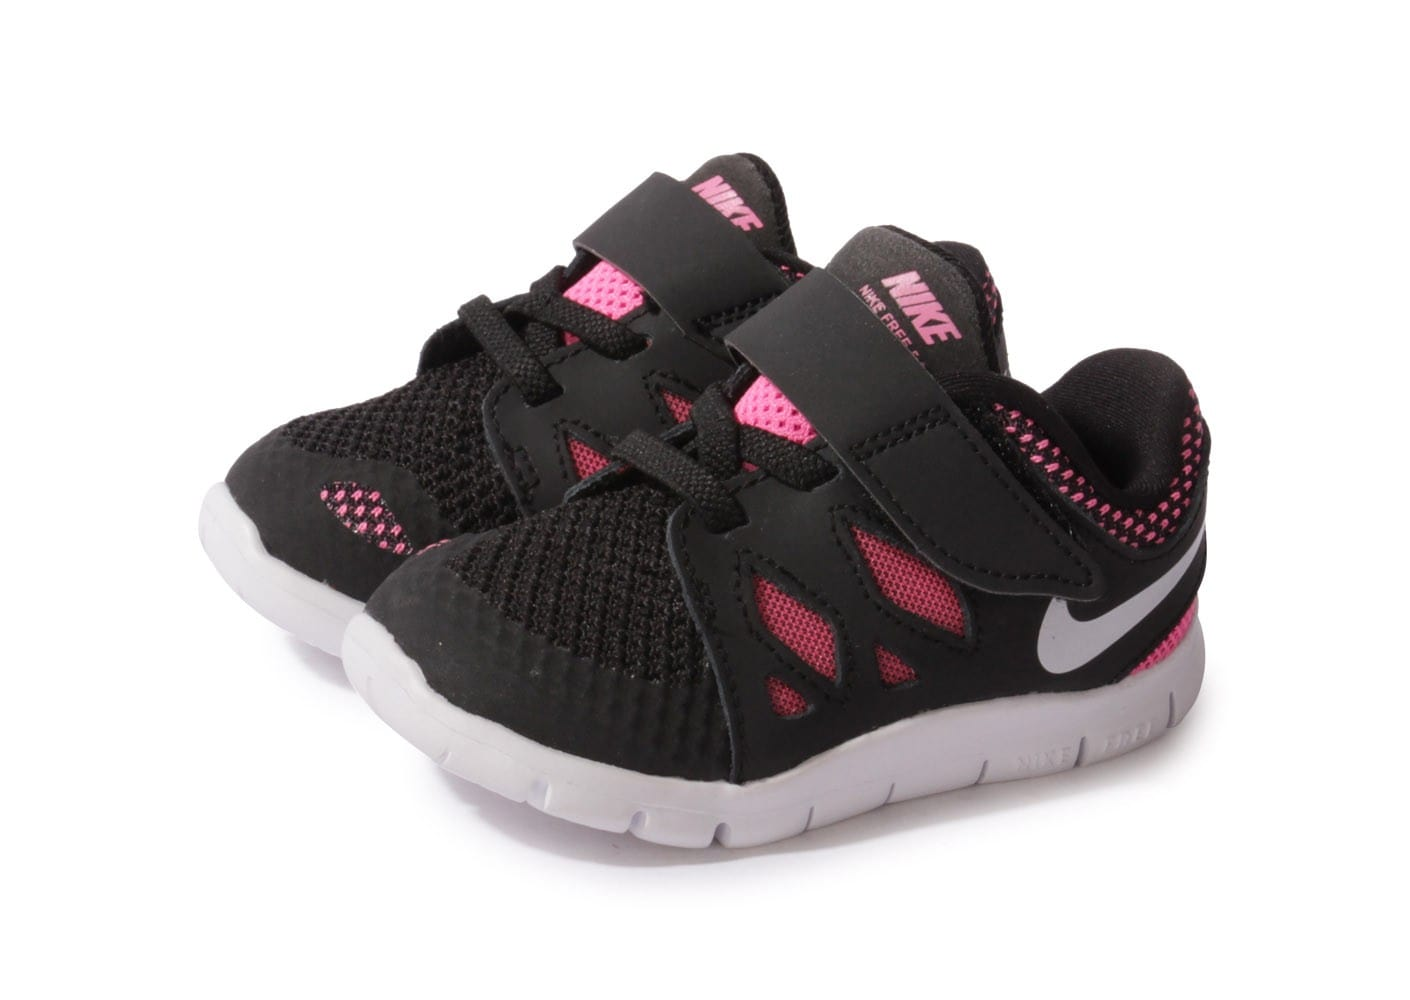 nike free 5 0 b b noire chaussures chaussures chausport. Black Bedroom Furniture Sets. Home Design Ideas